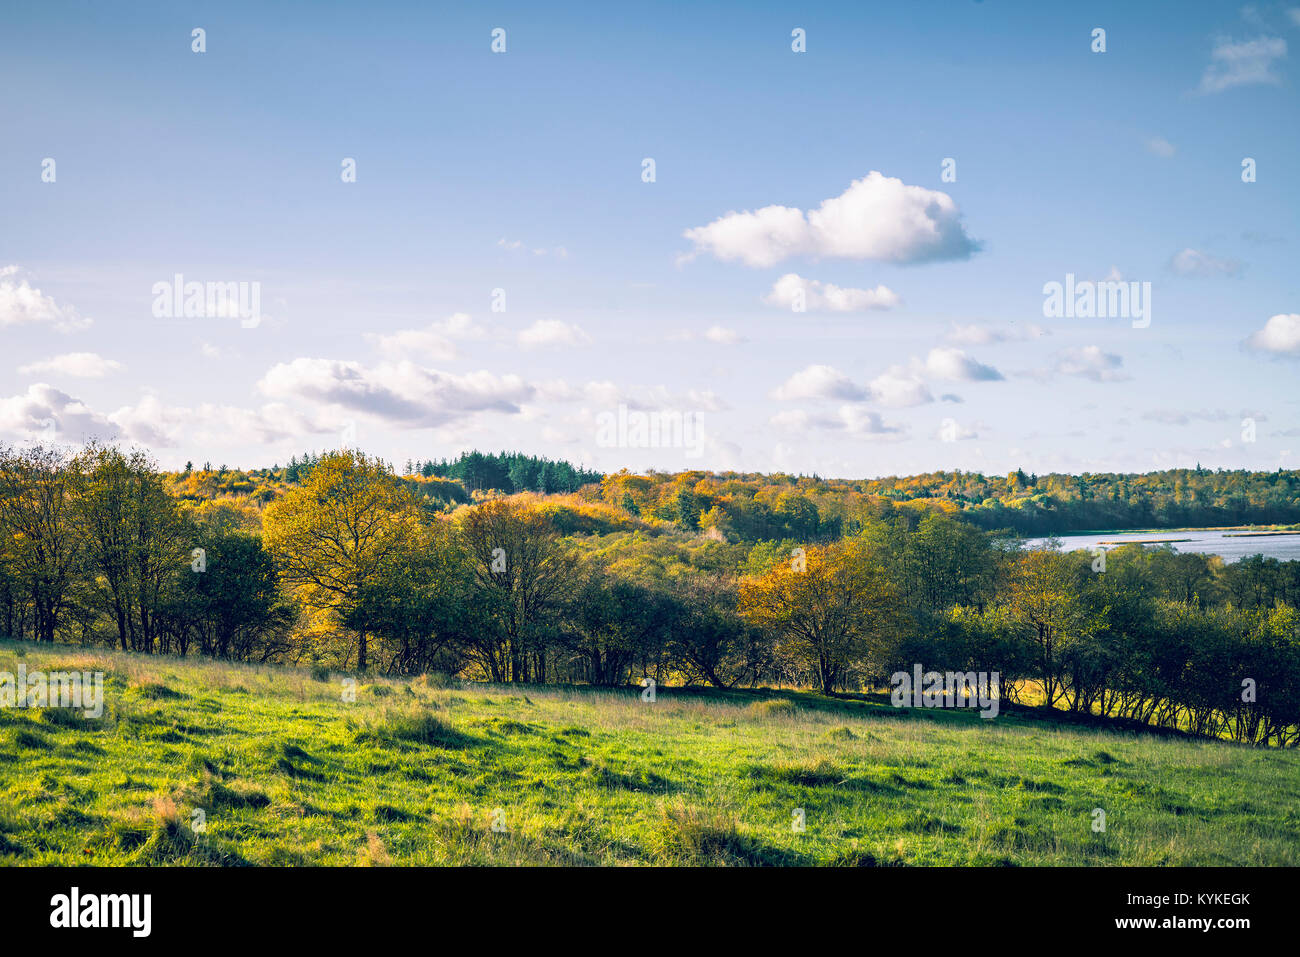 Autumn landscape with colorful trees on a green field in the fall under a blue sky - Stock Image